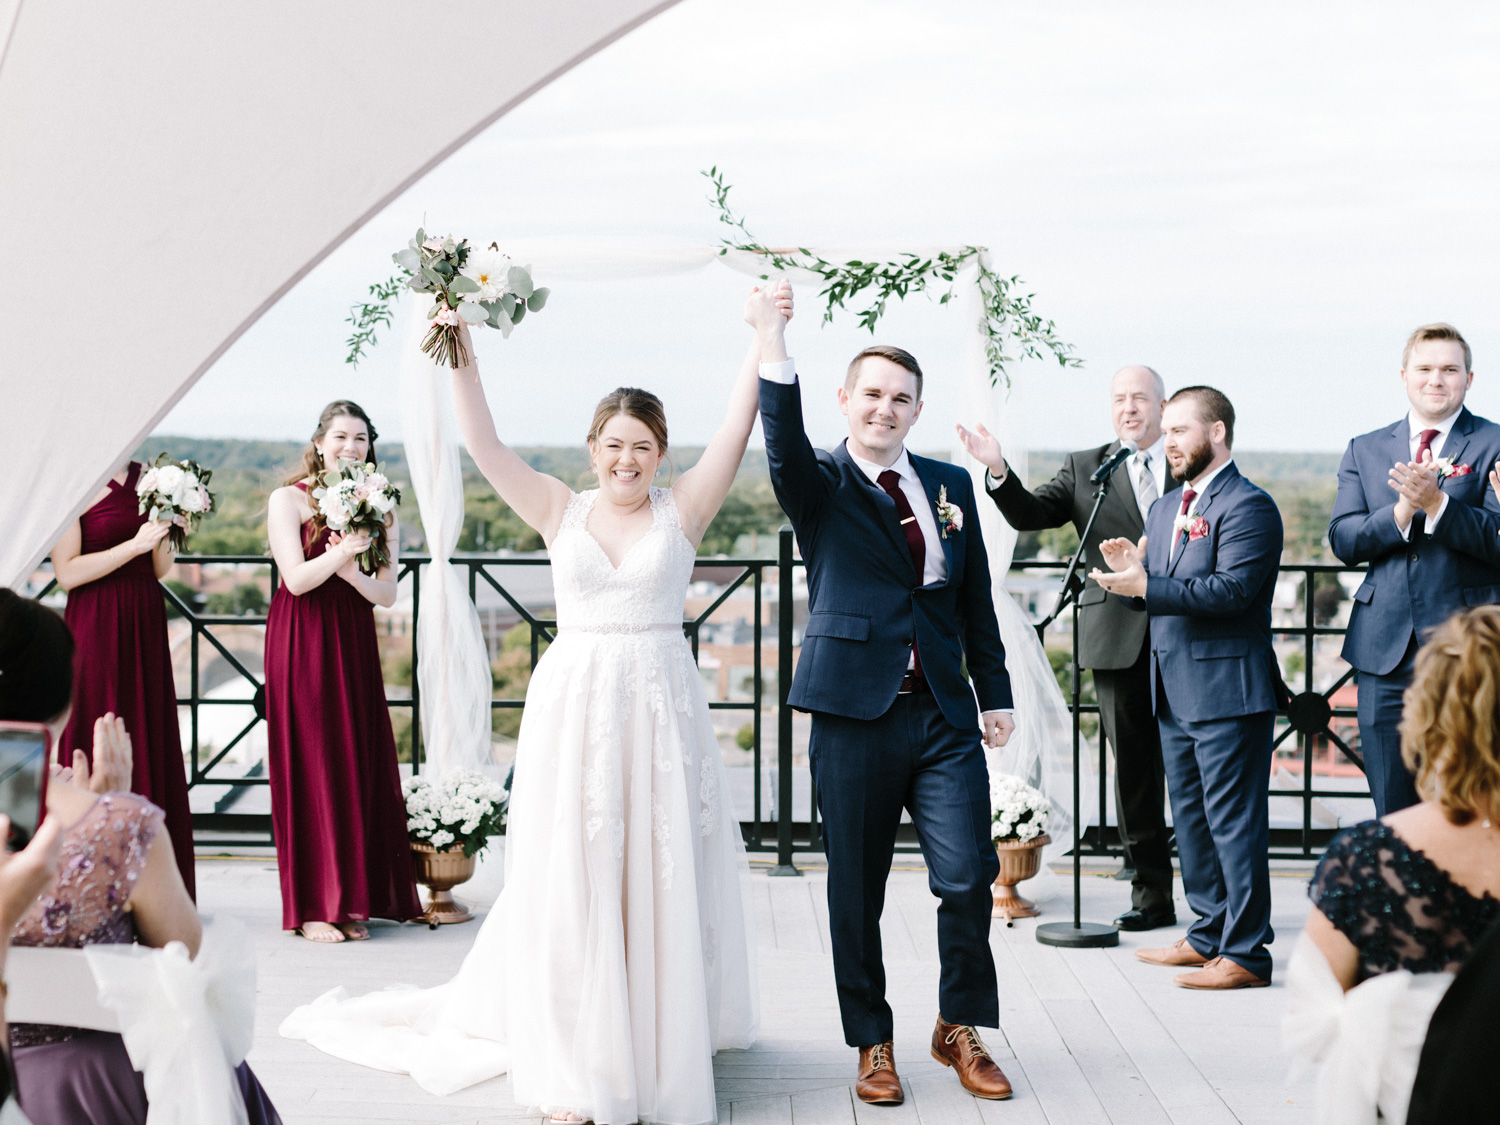 A couple raises held hands in joy after being pronounced married at their rooftop ceremony at Loft 310